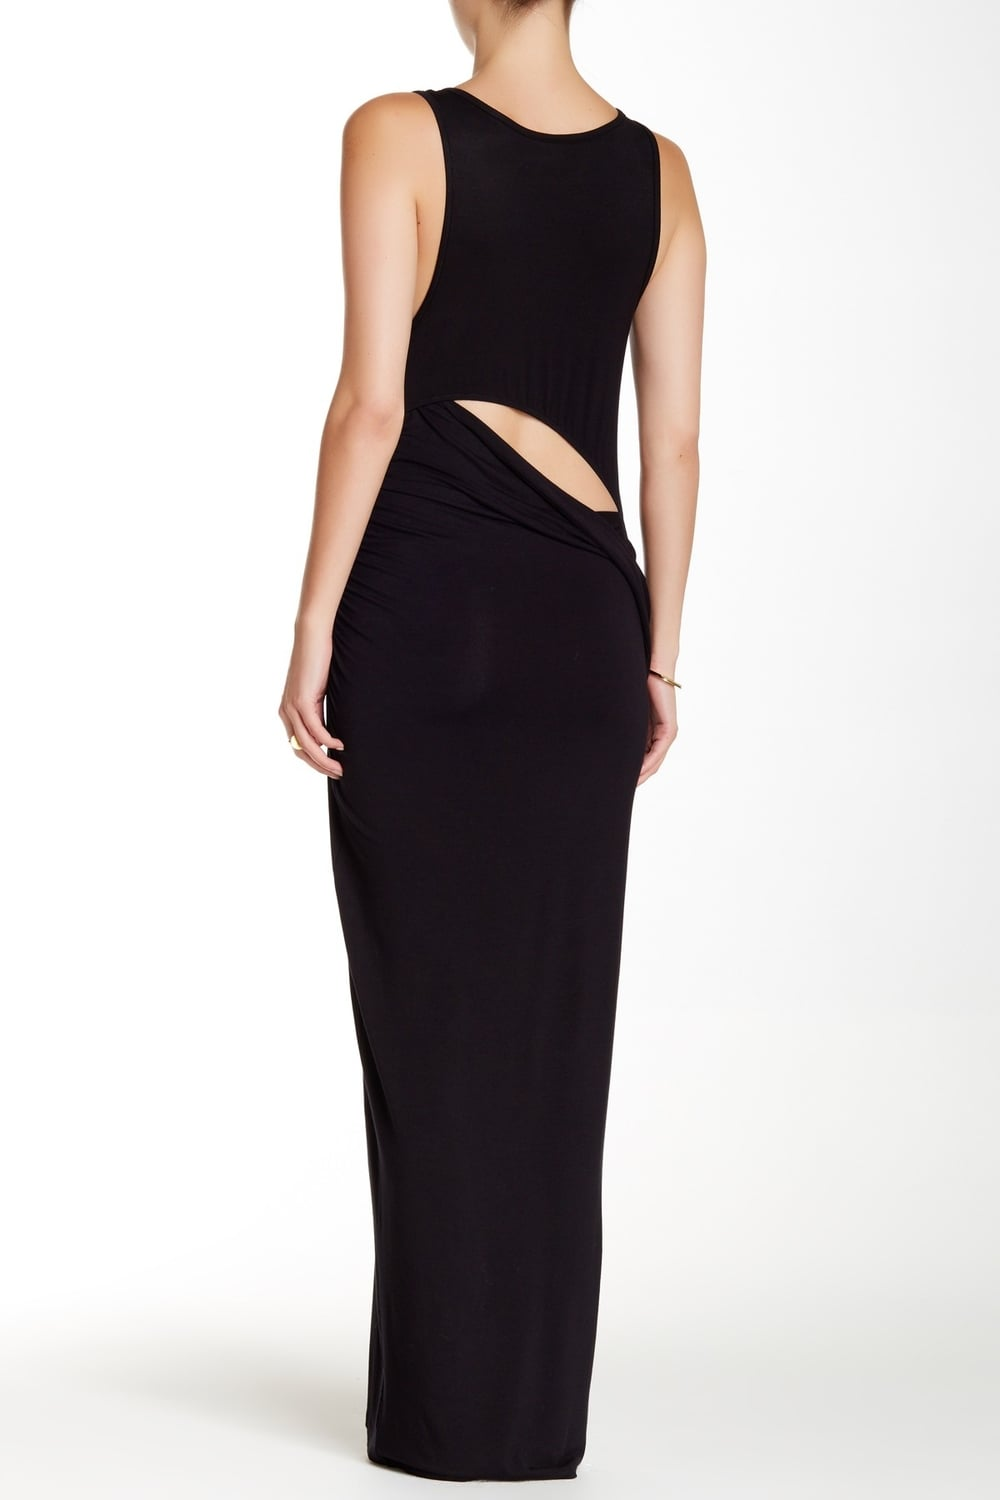 Loveappella Open Back Tank Maxi Dress. Available in black, navy. Nordstrom Rack. Was: $98 Now: $39.